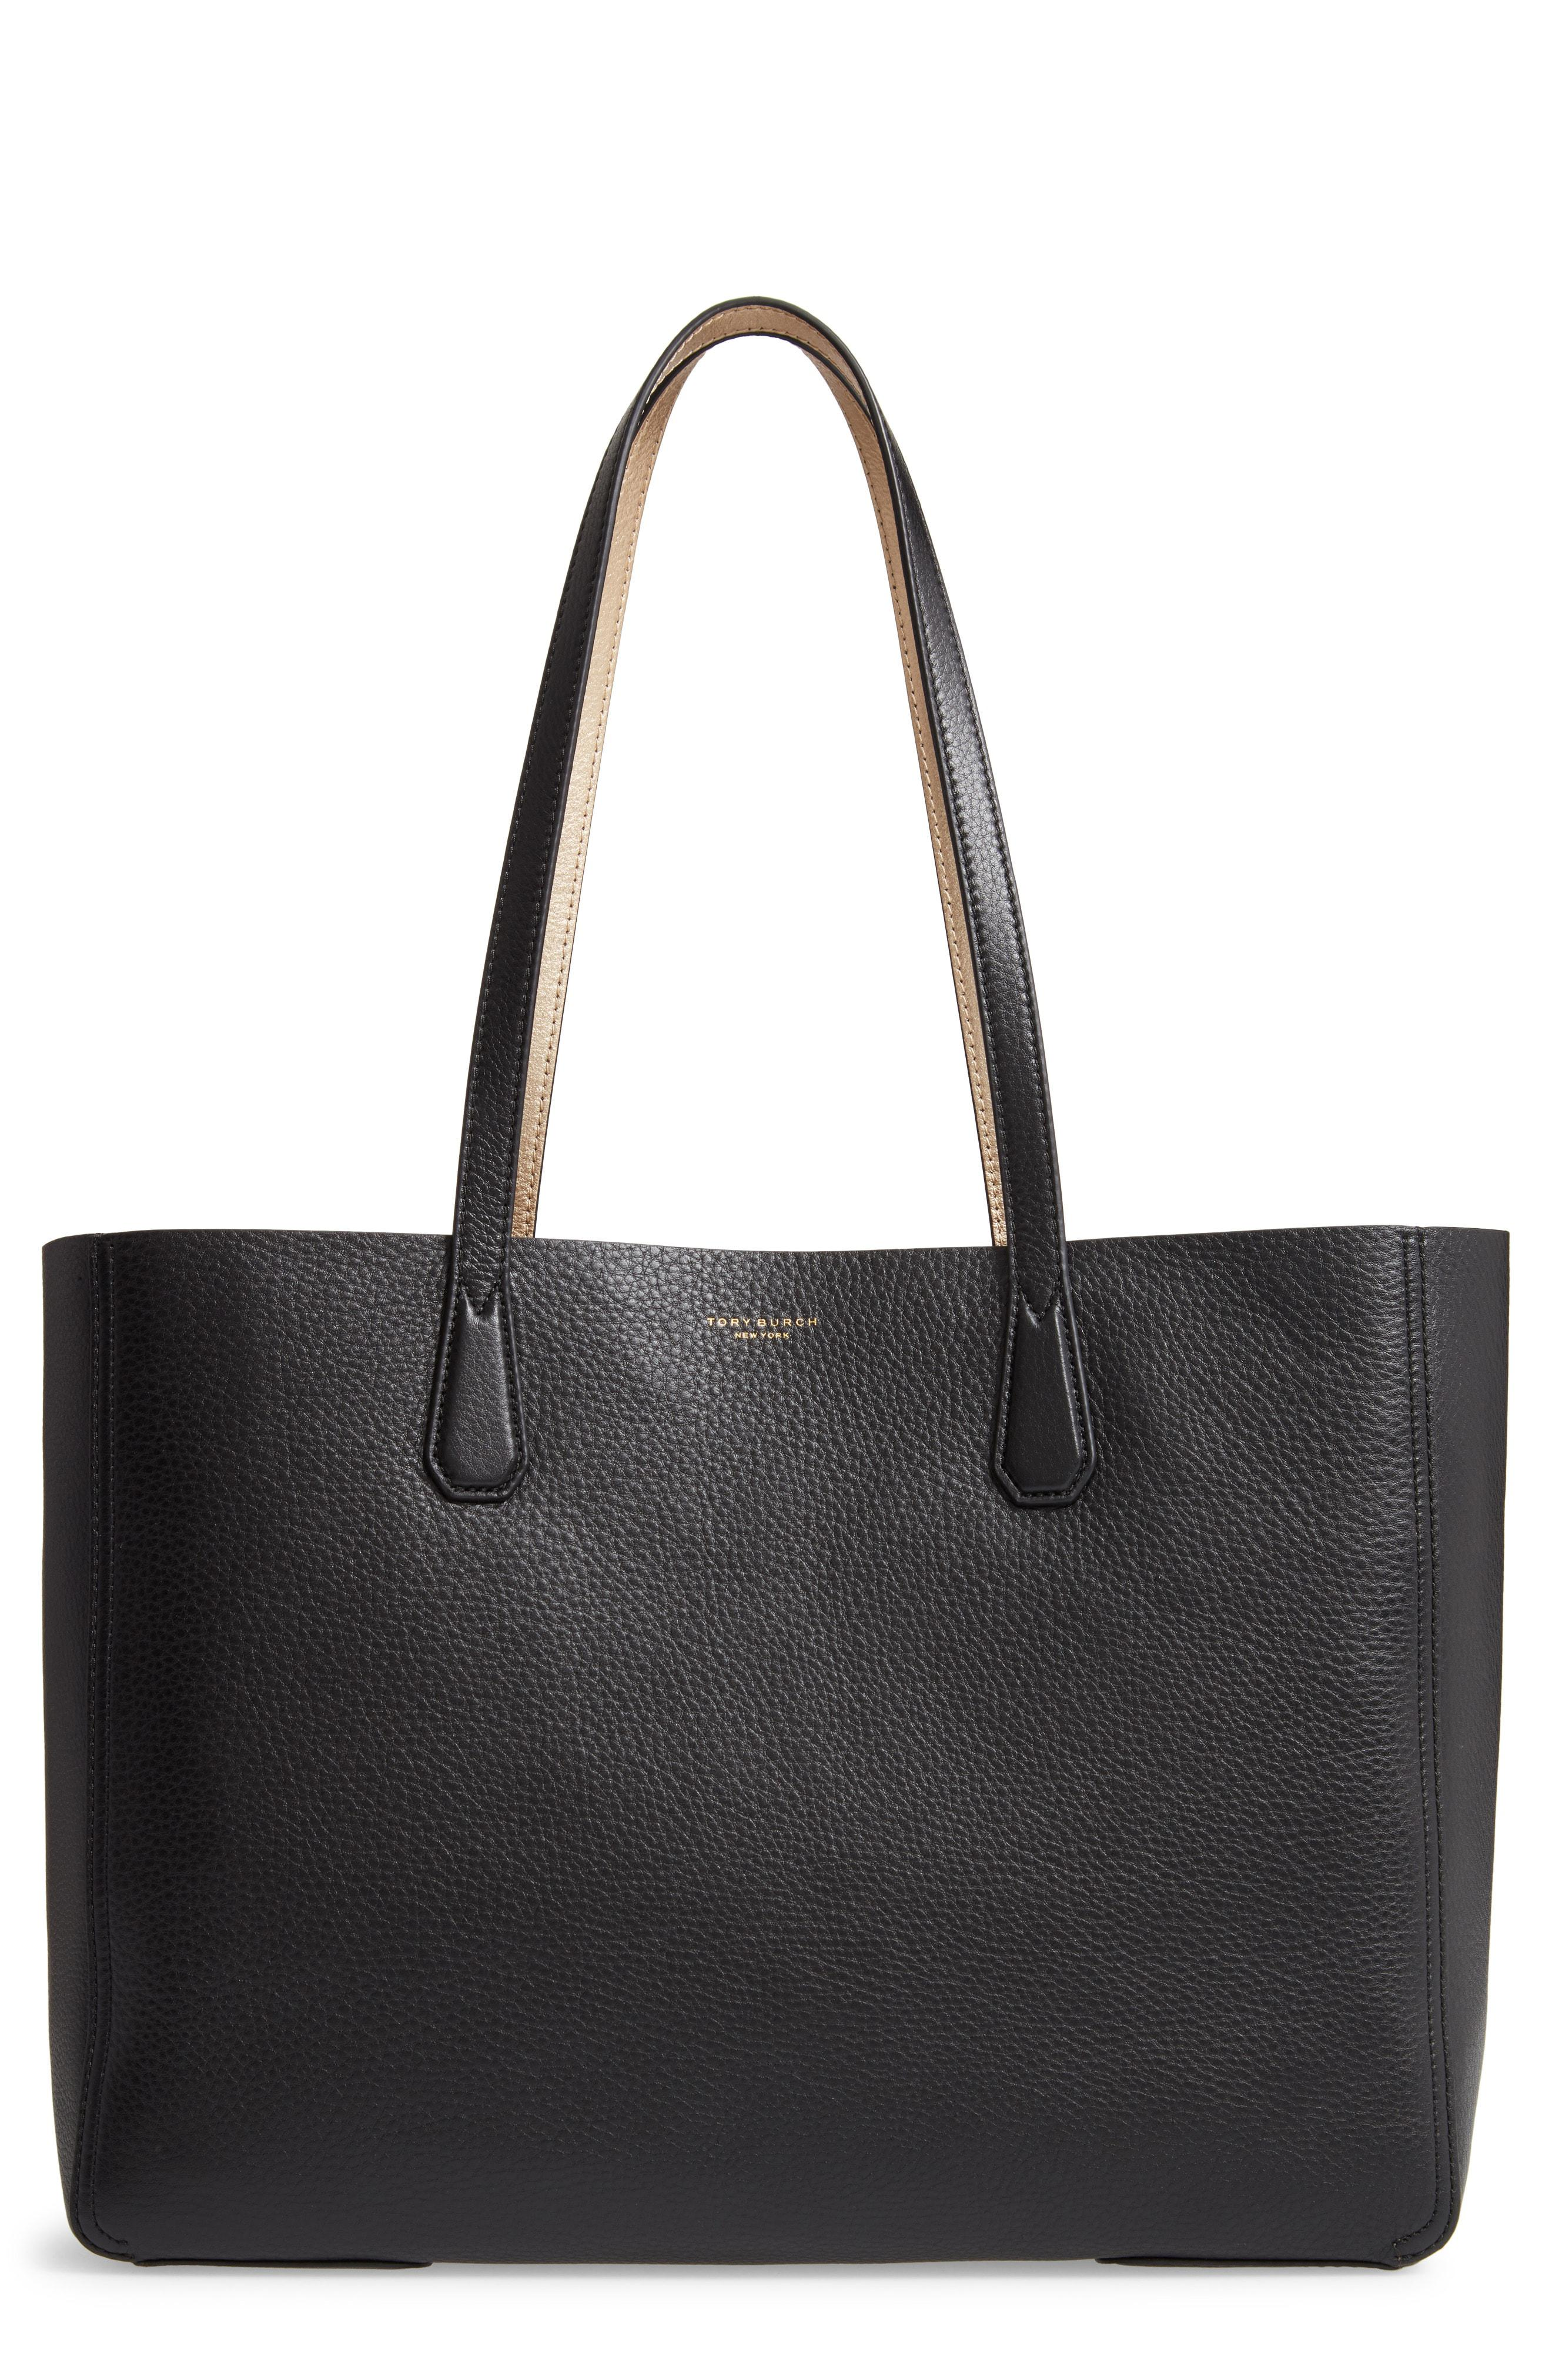 5726d79b7b0 Lyst - Tory Burch Perry Leather Tote in Black